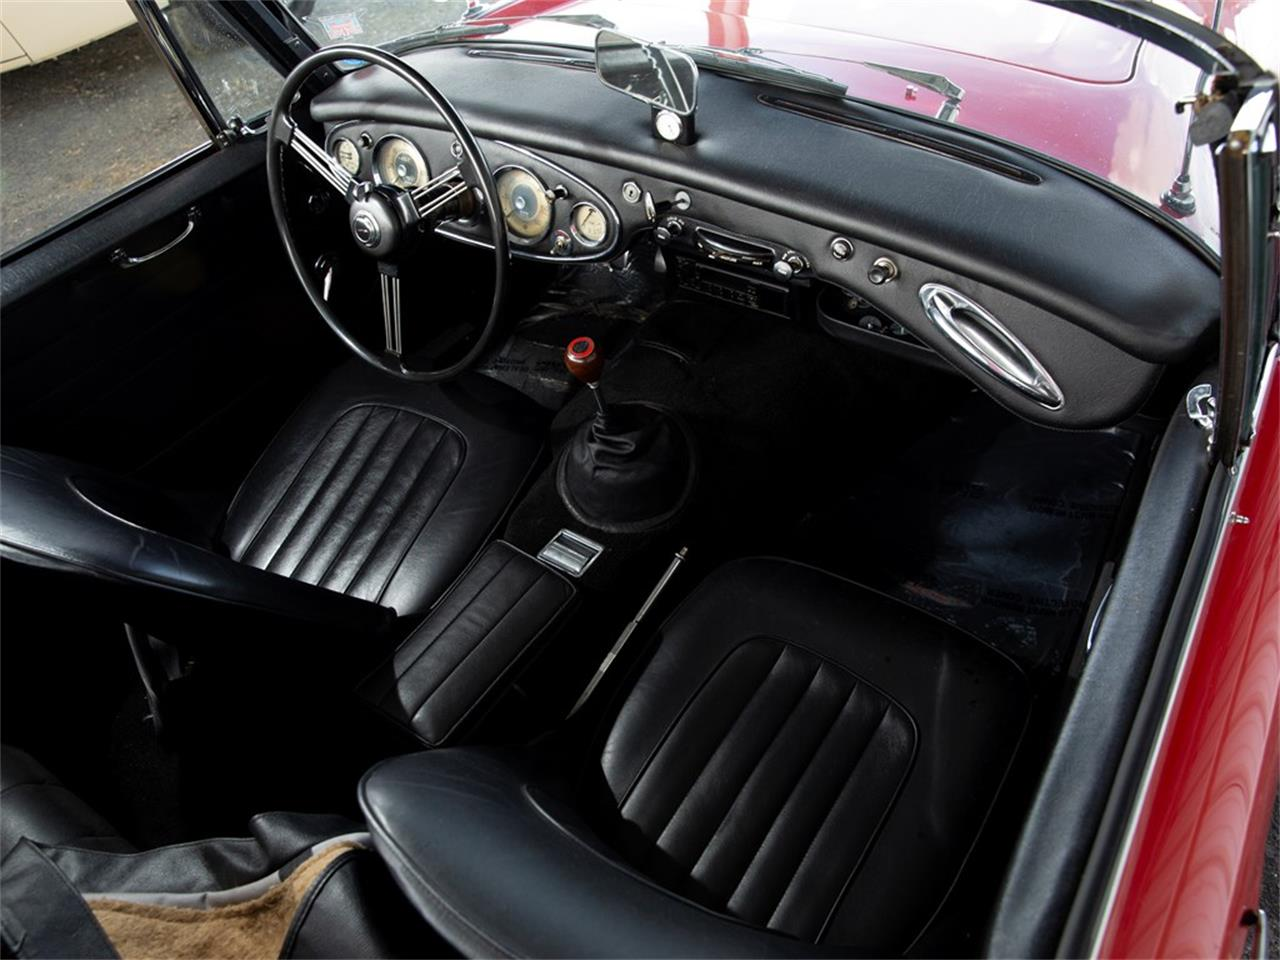 Large Picture of Classic 1963 Austin-Healey 3000 Mk II BJ7 Auction Vehicle - NUCB